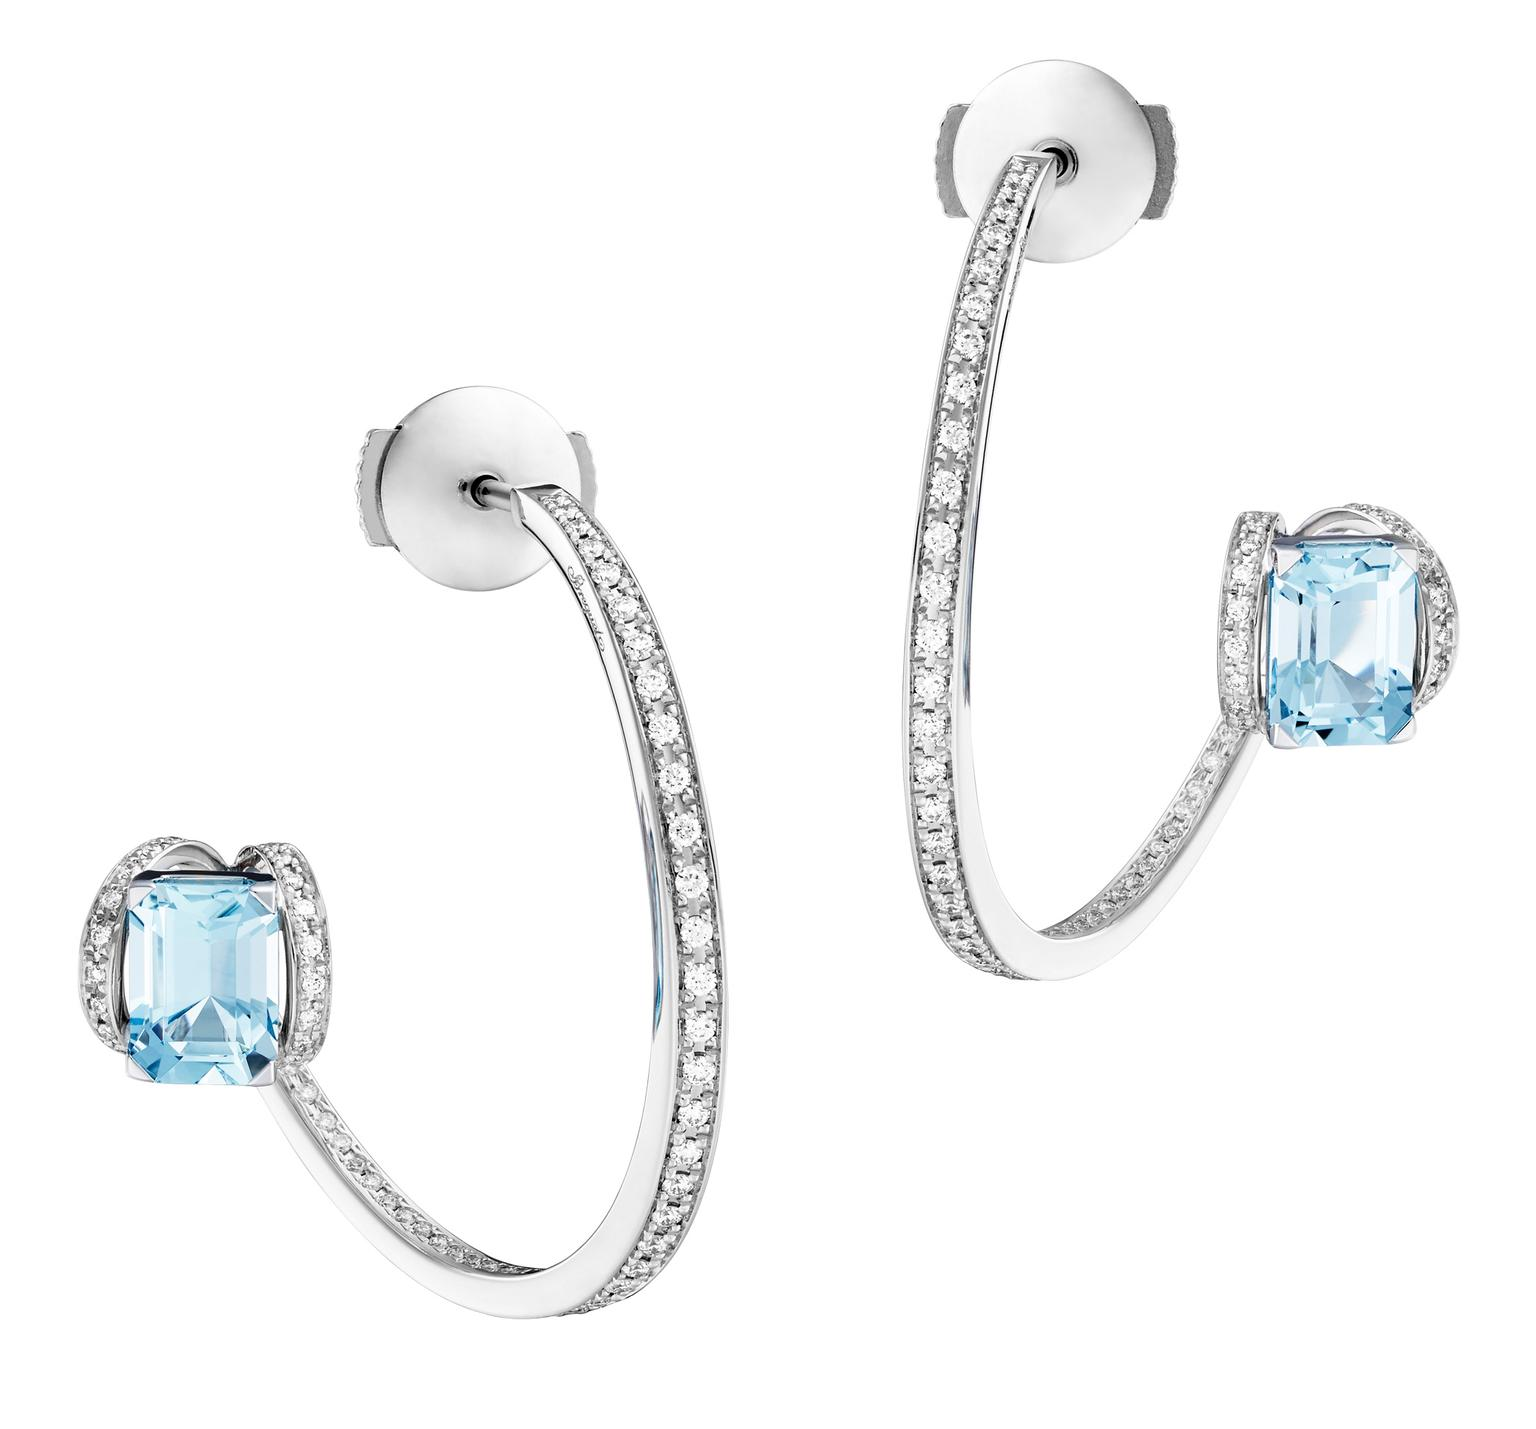 Breguet Mini Reine de Naples Creole aquamarine earrings_20130801_Zoom